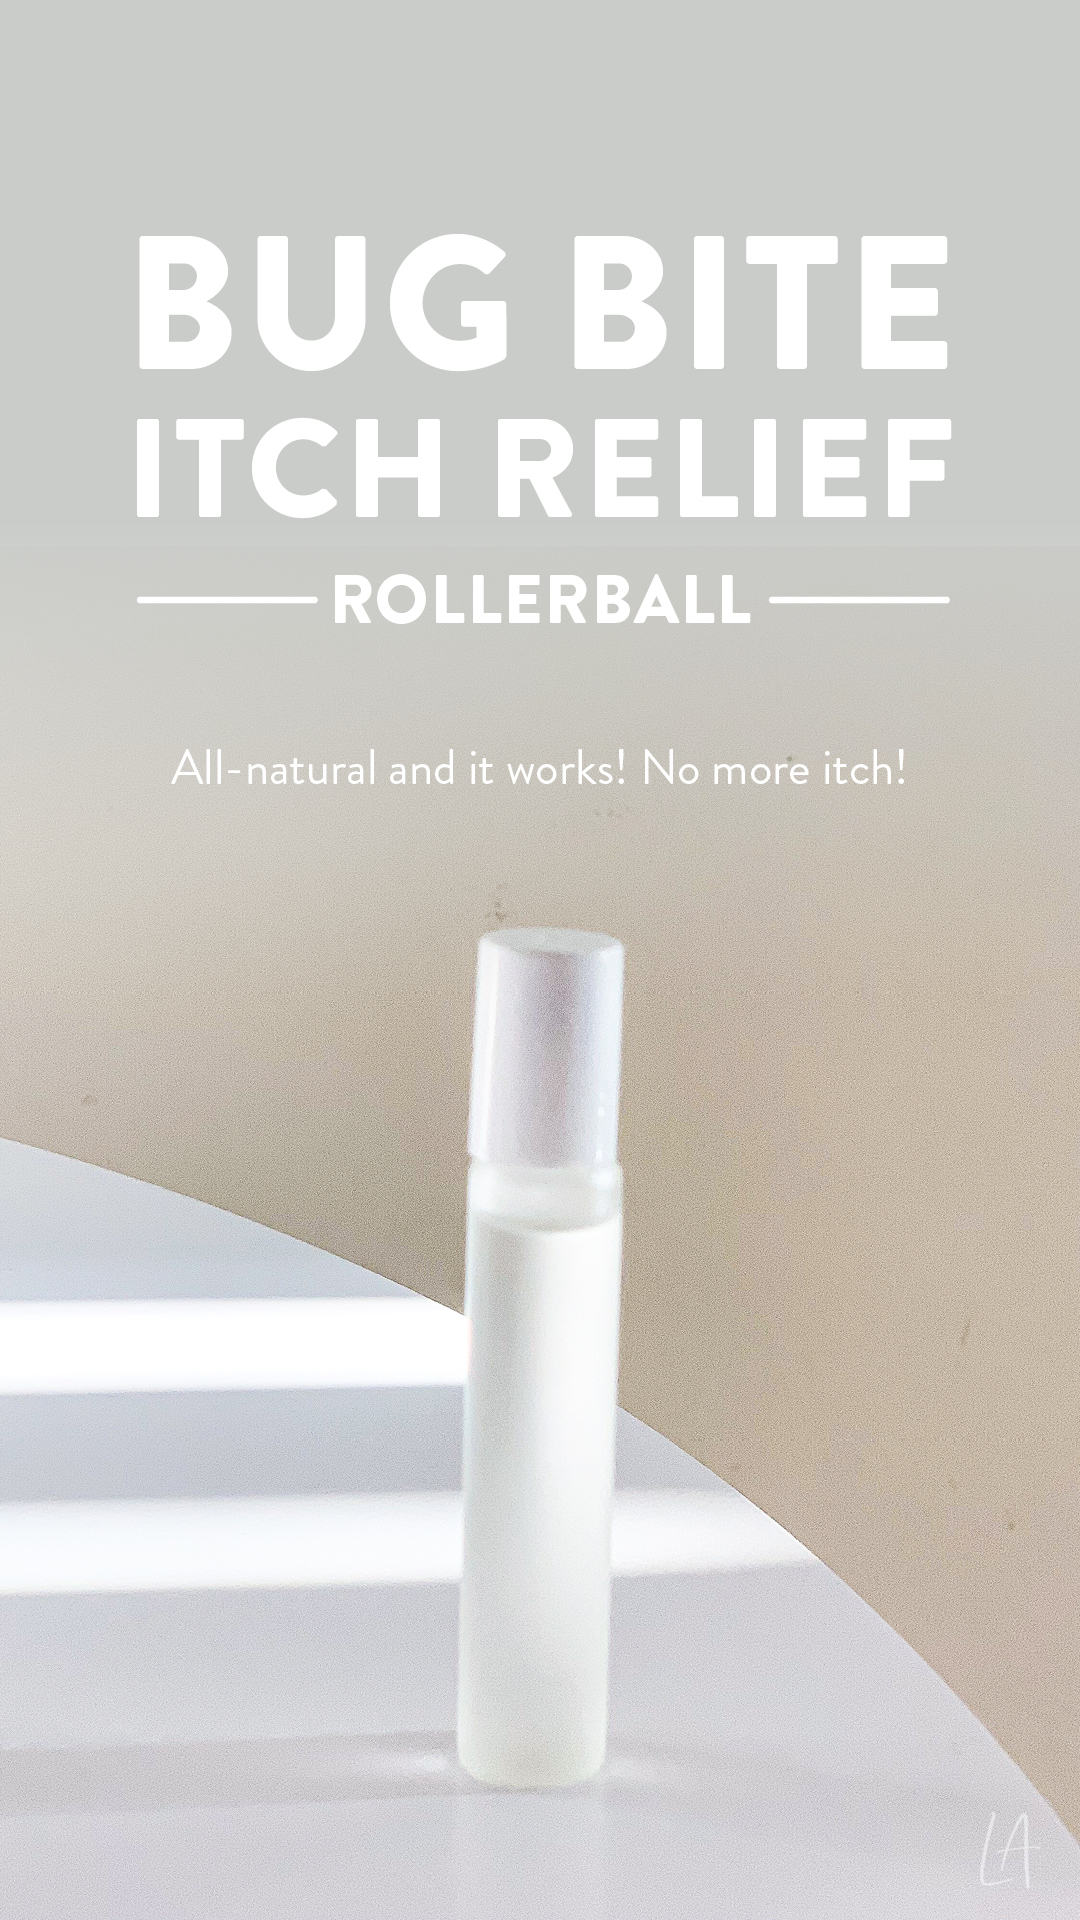 Bug bite itch relief rollerball